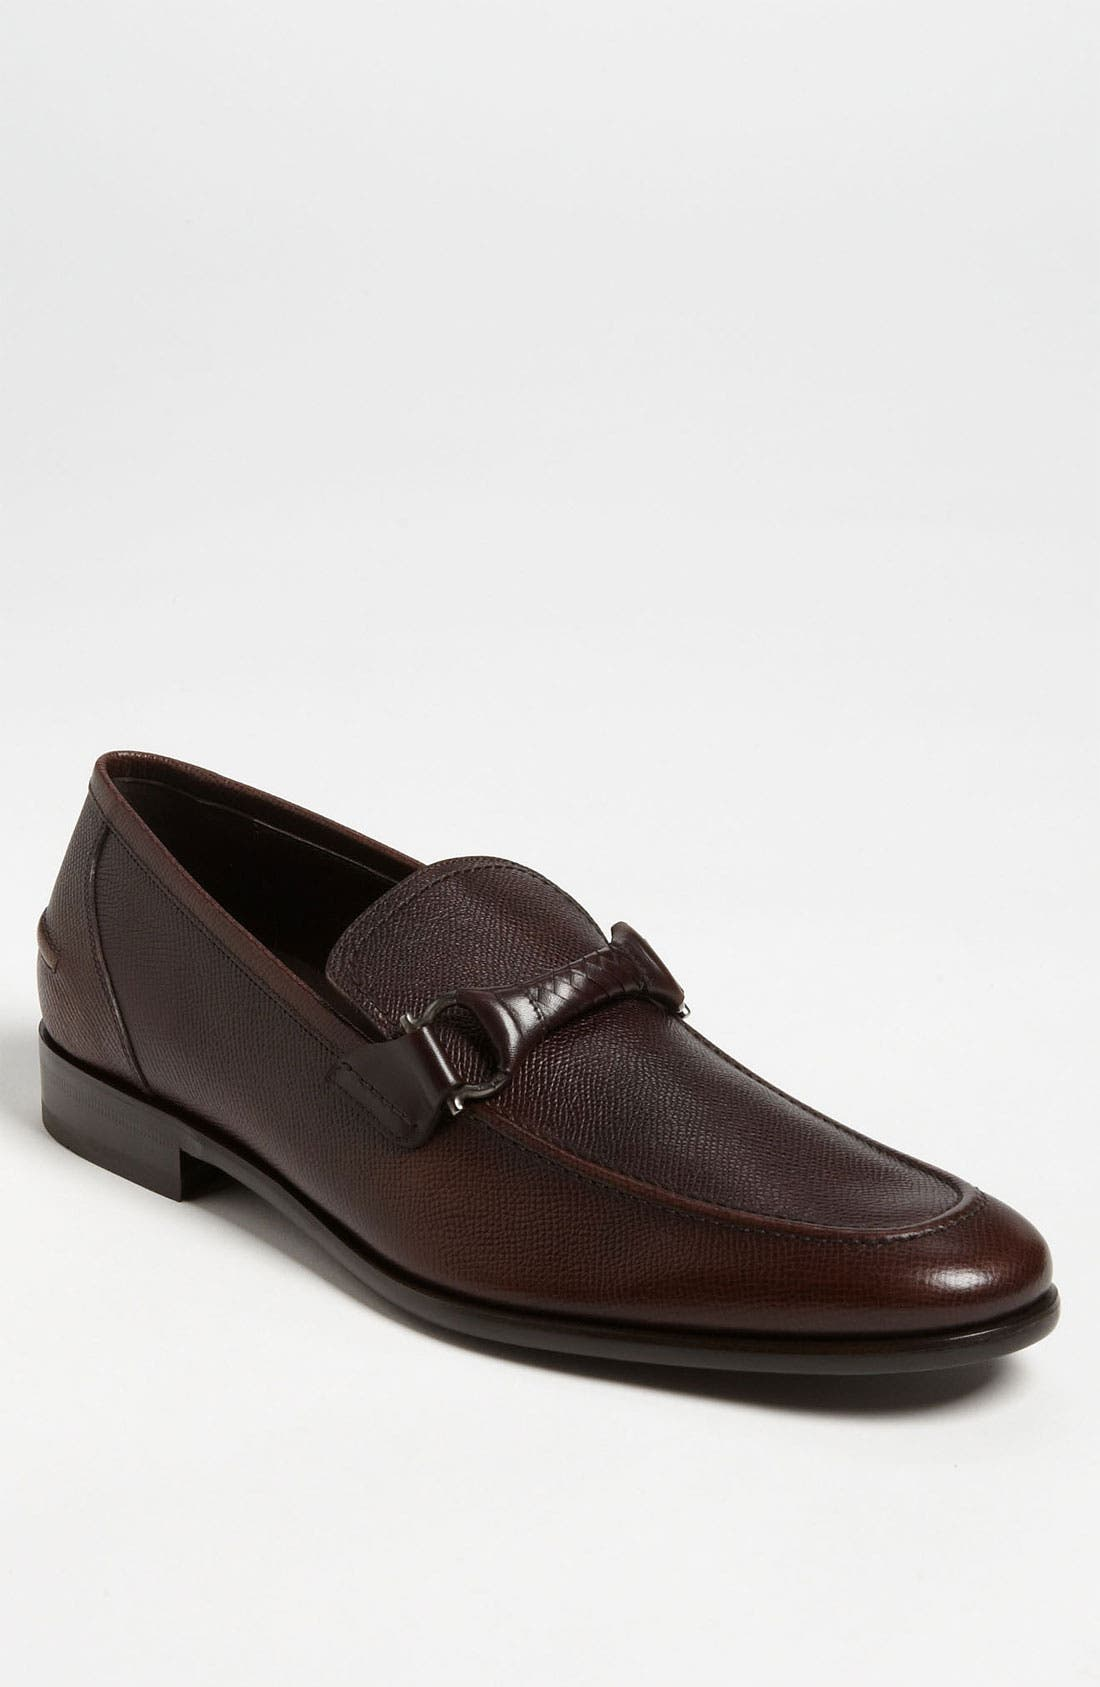 Alternate Image 1 Selected - Salvatore Ferragamo 'Twist' Bit Loafer